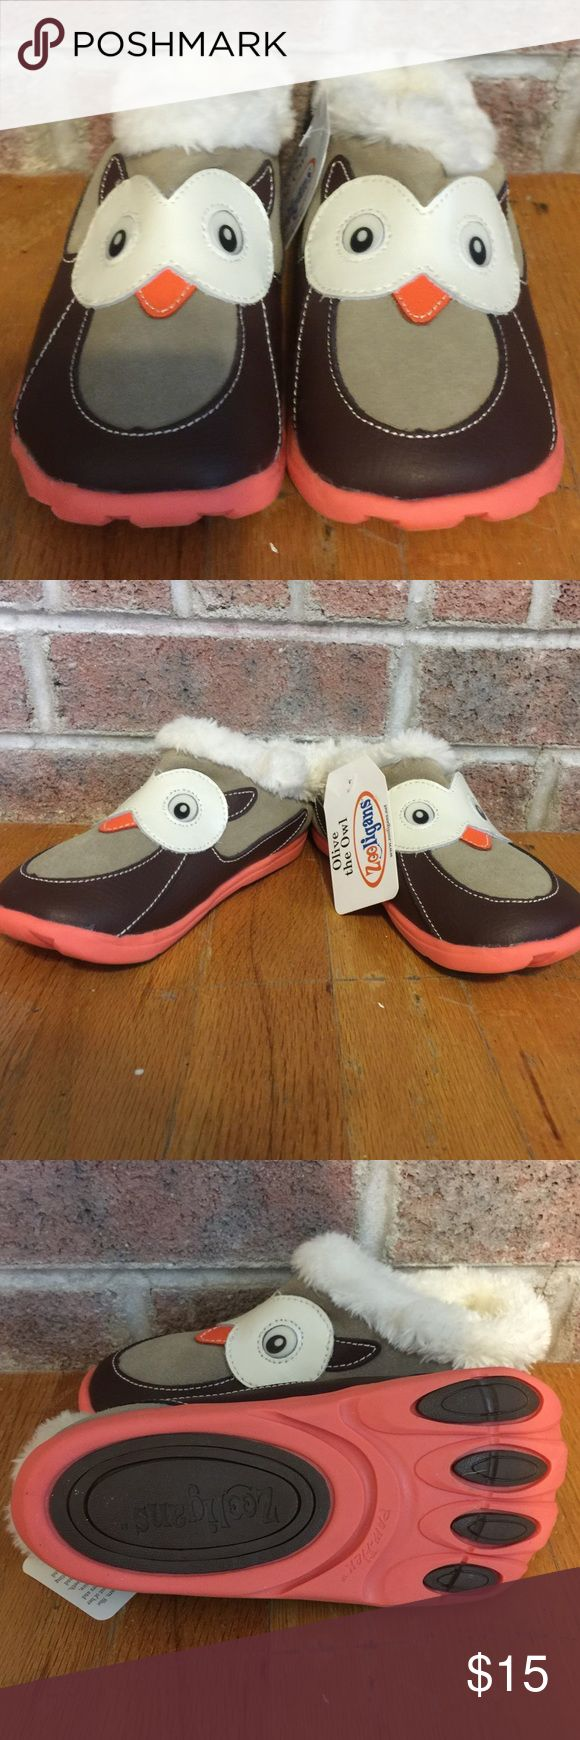 """Kids Zooligans """"Olive the Owl"""" fuzzy slippers Please feel free to ask any questions or make an offer, and as always THANK YOU for shopping my posh closet! Xoxo -Tish zooligans Shoes"""